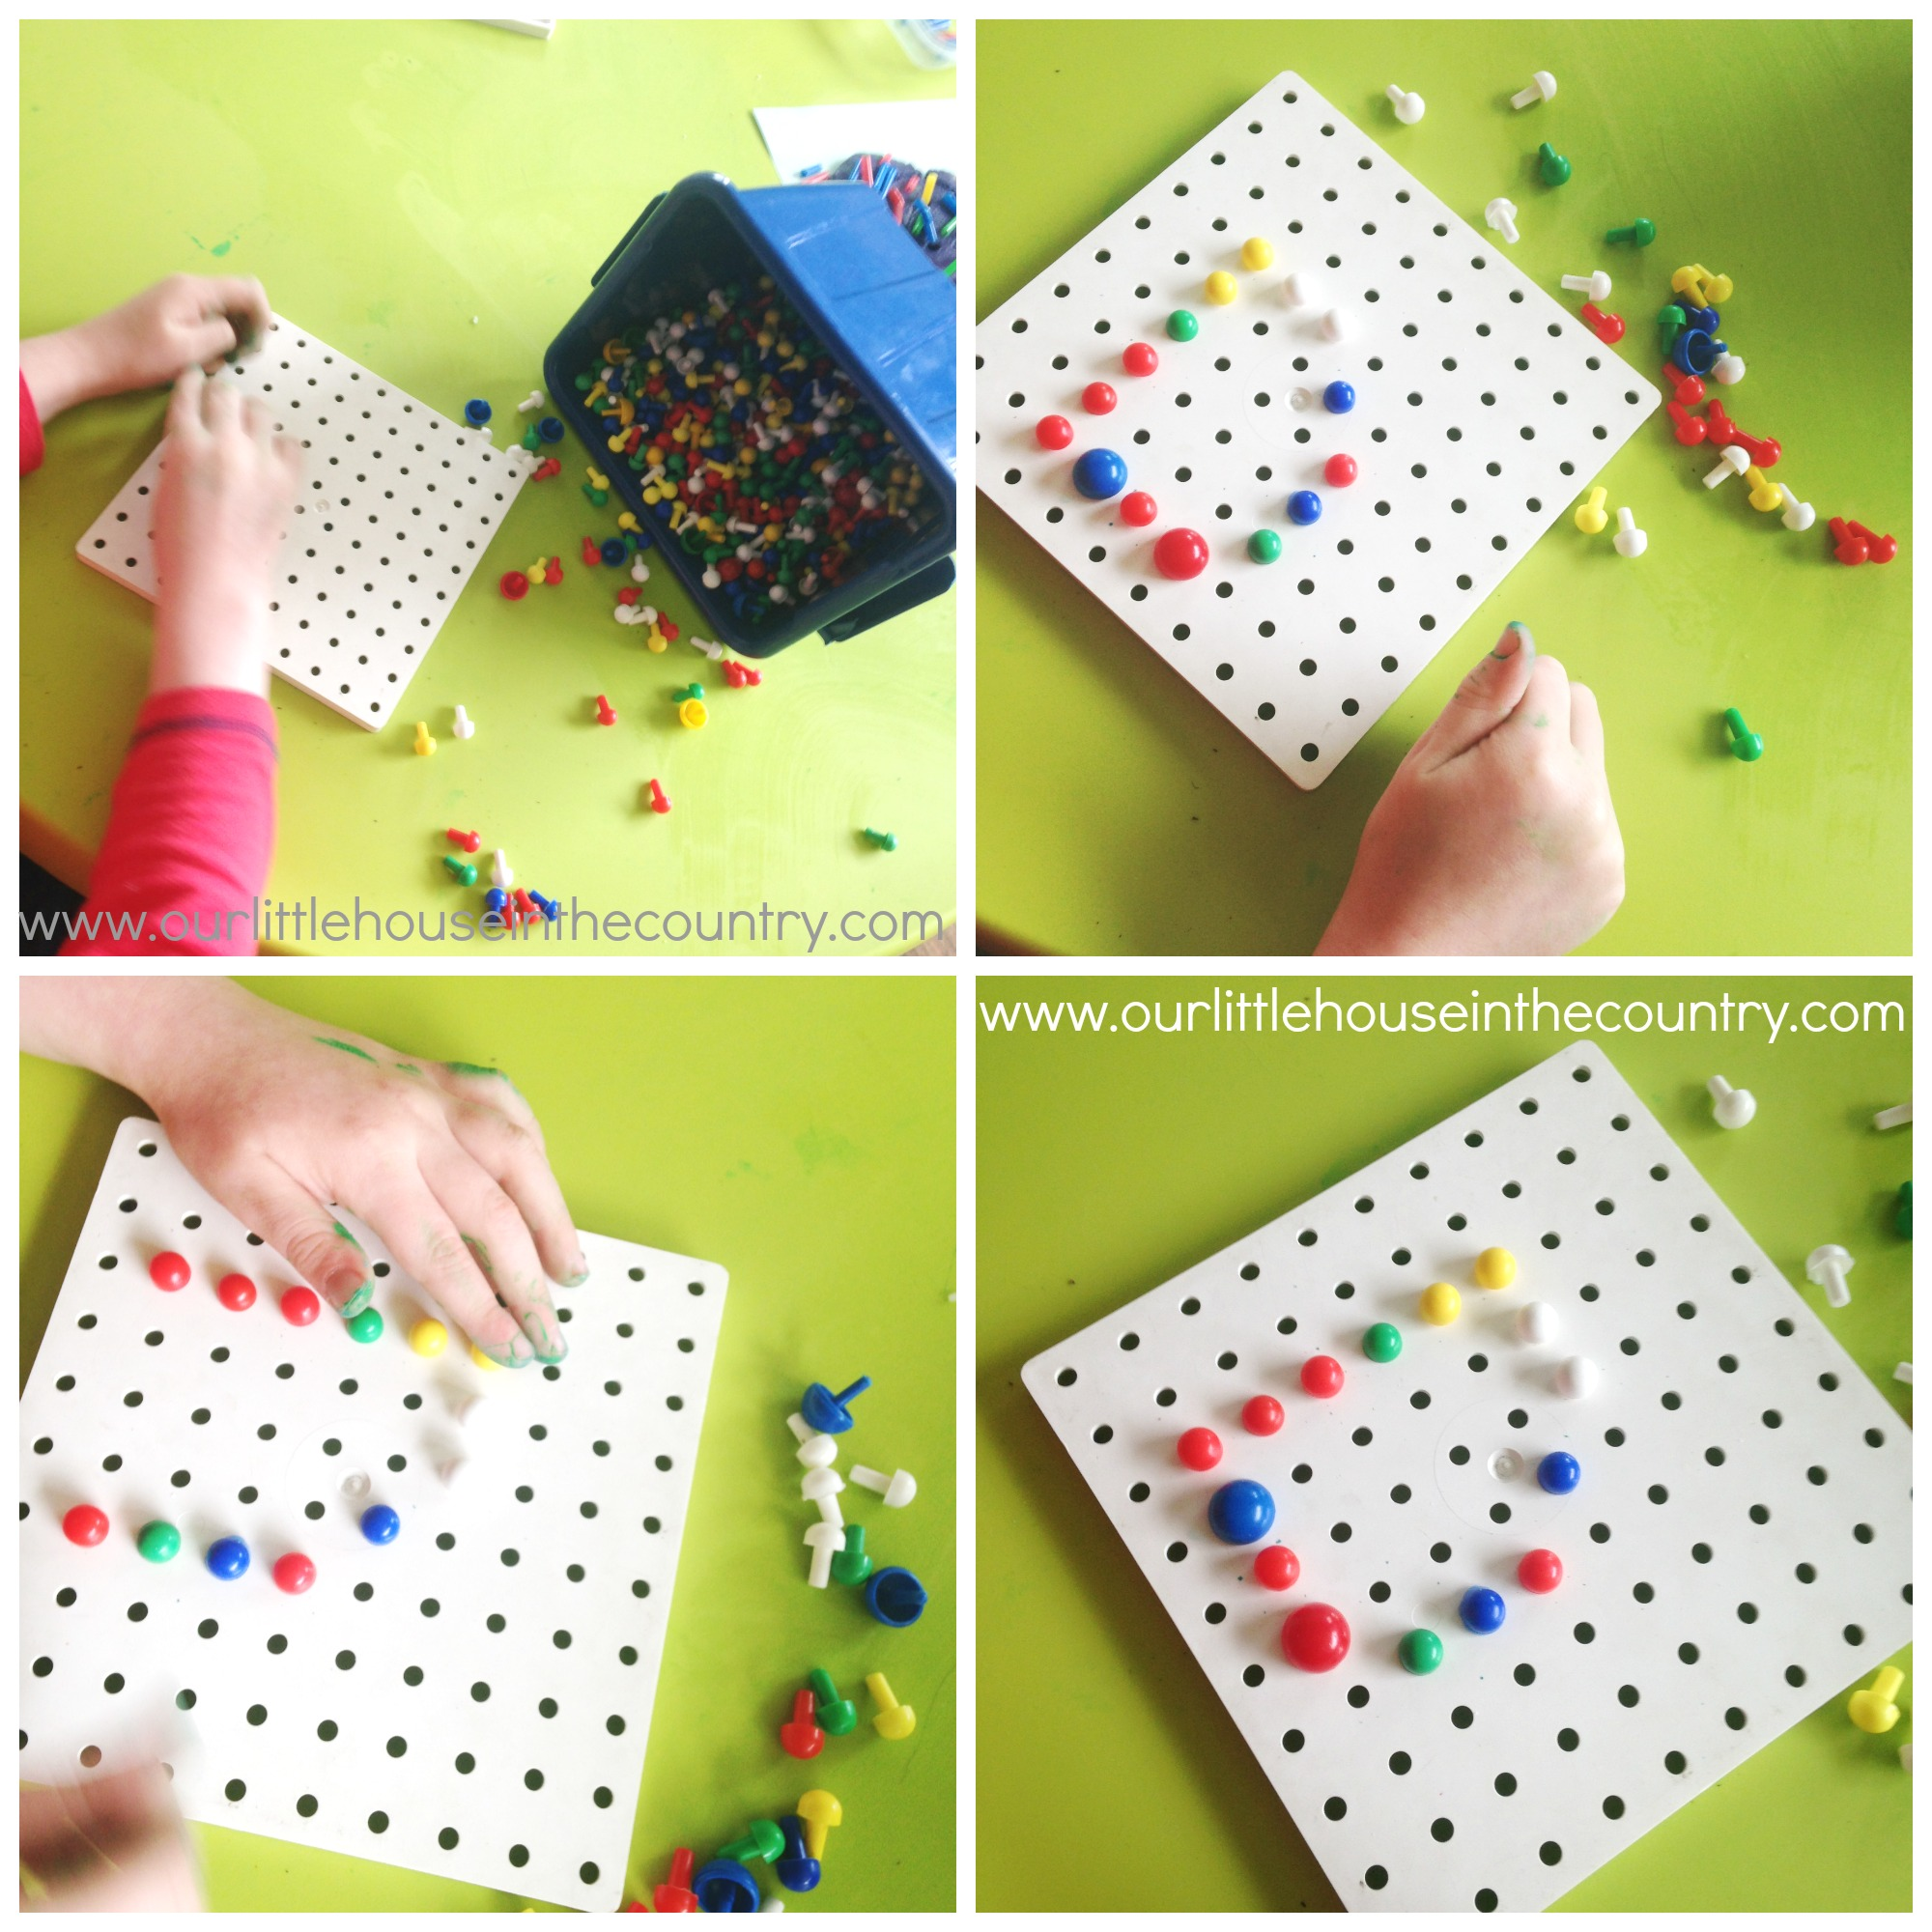 Fine motor skills handwriting activities